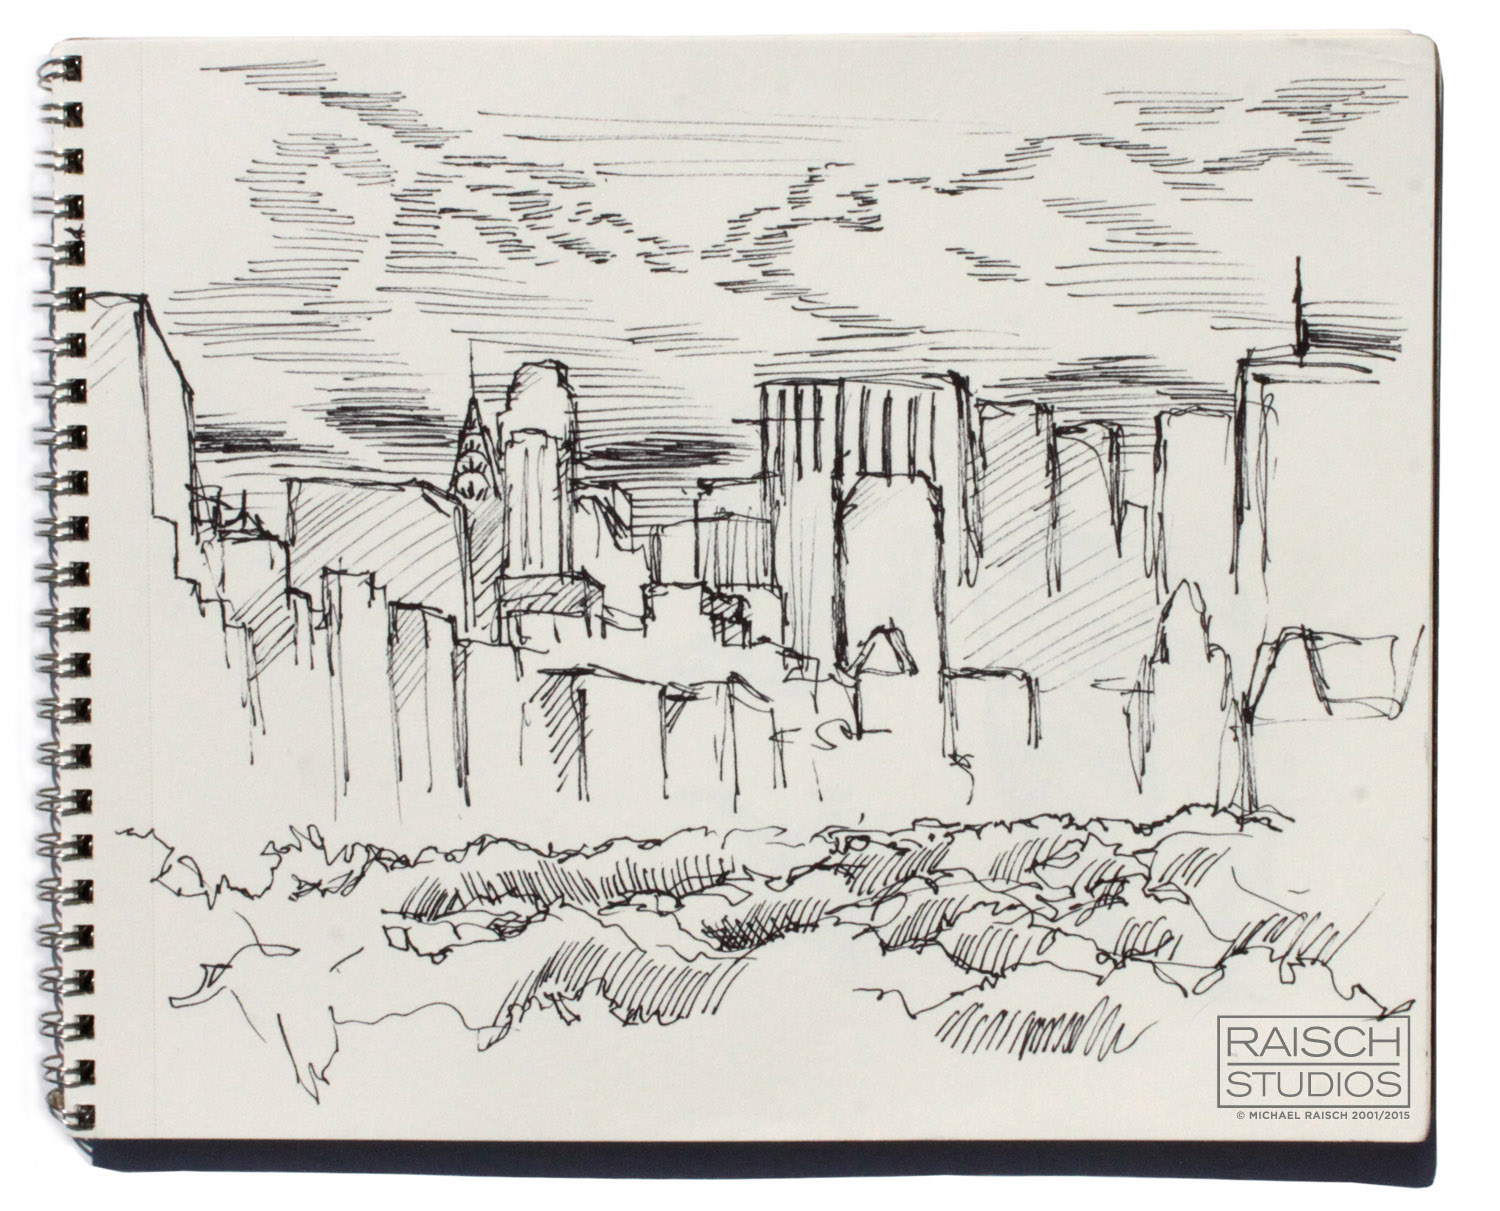 Central Park and Midtown, sketched from the MET, November 3rd, 2001